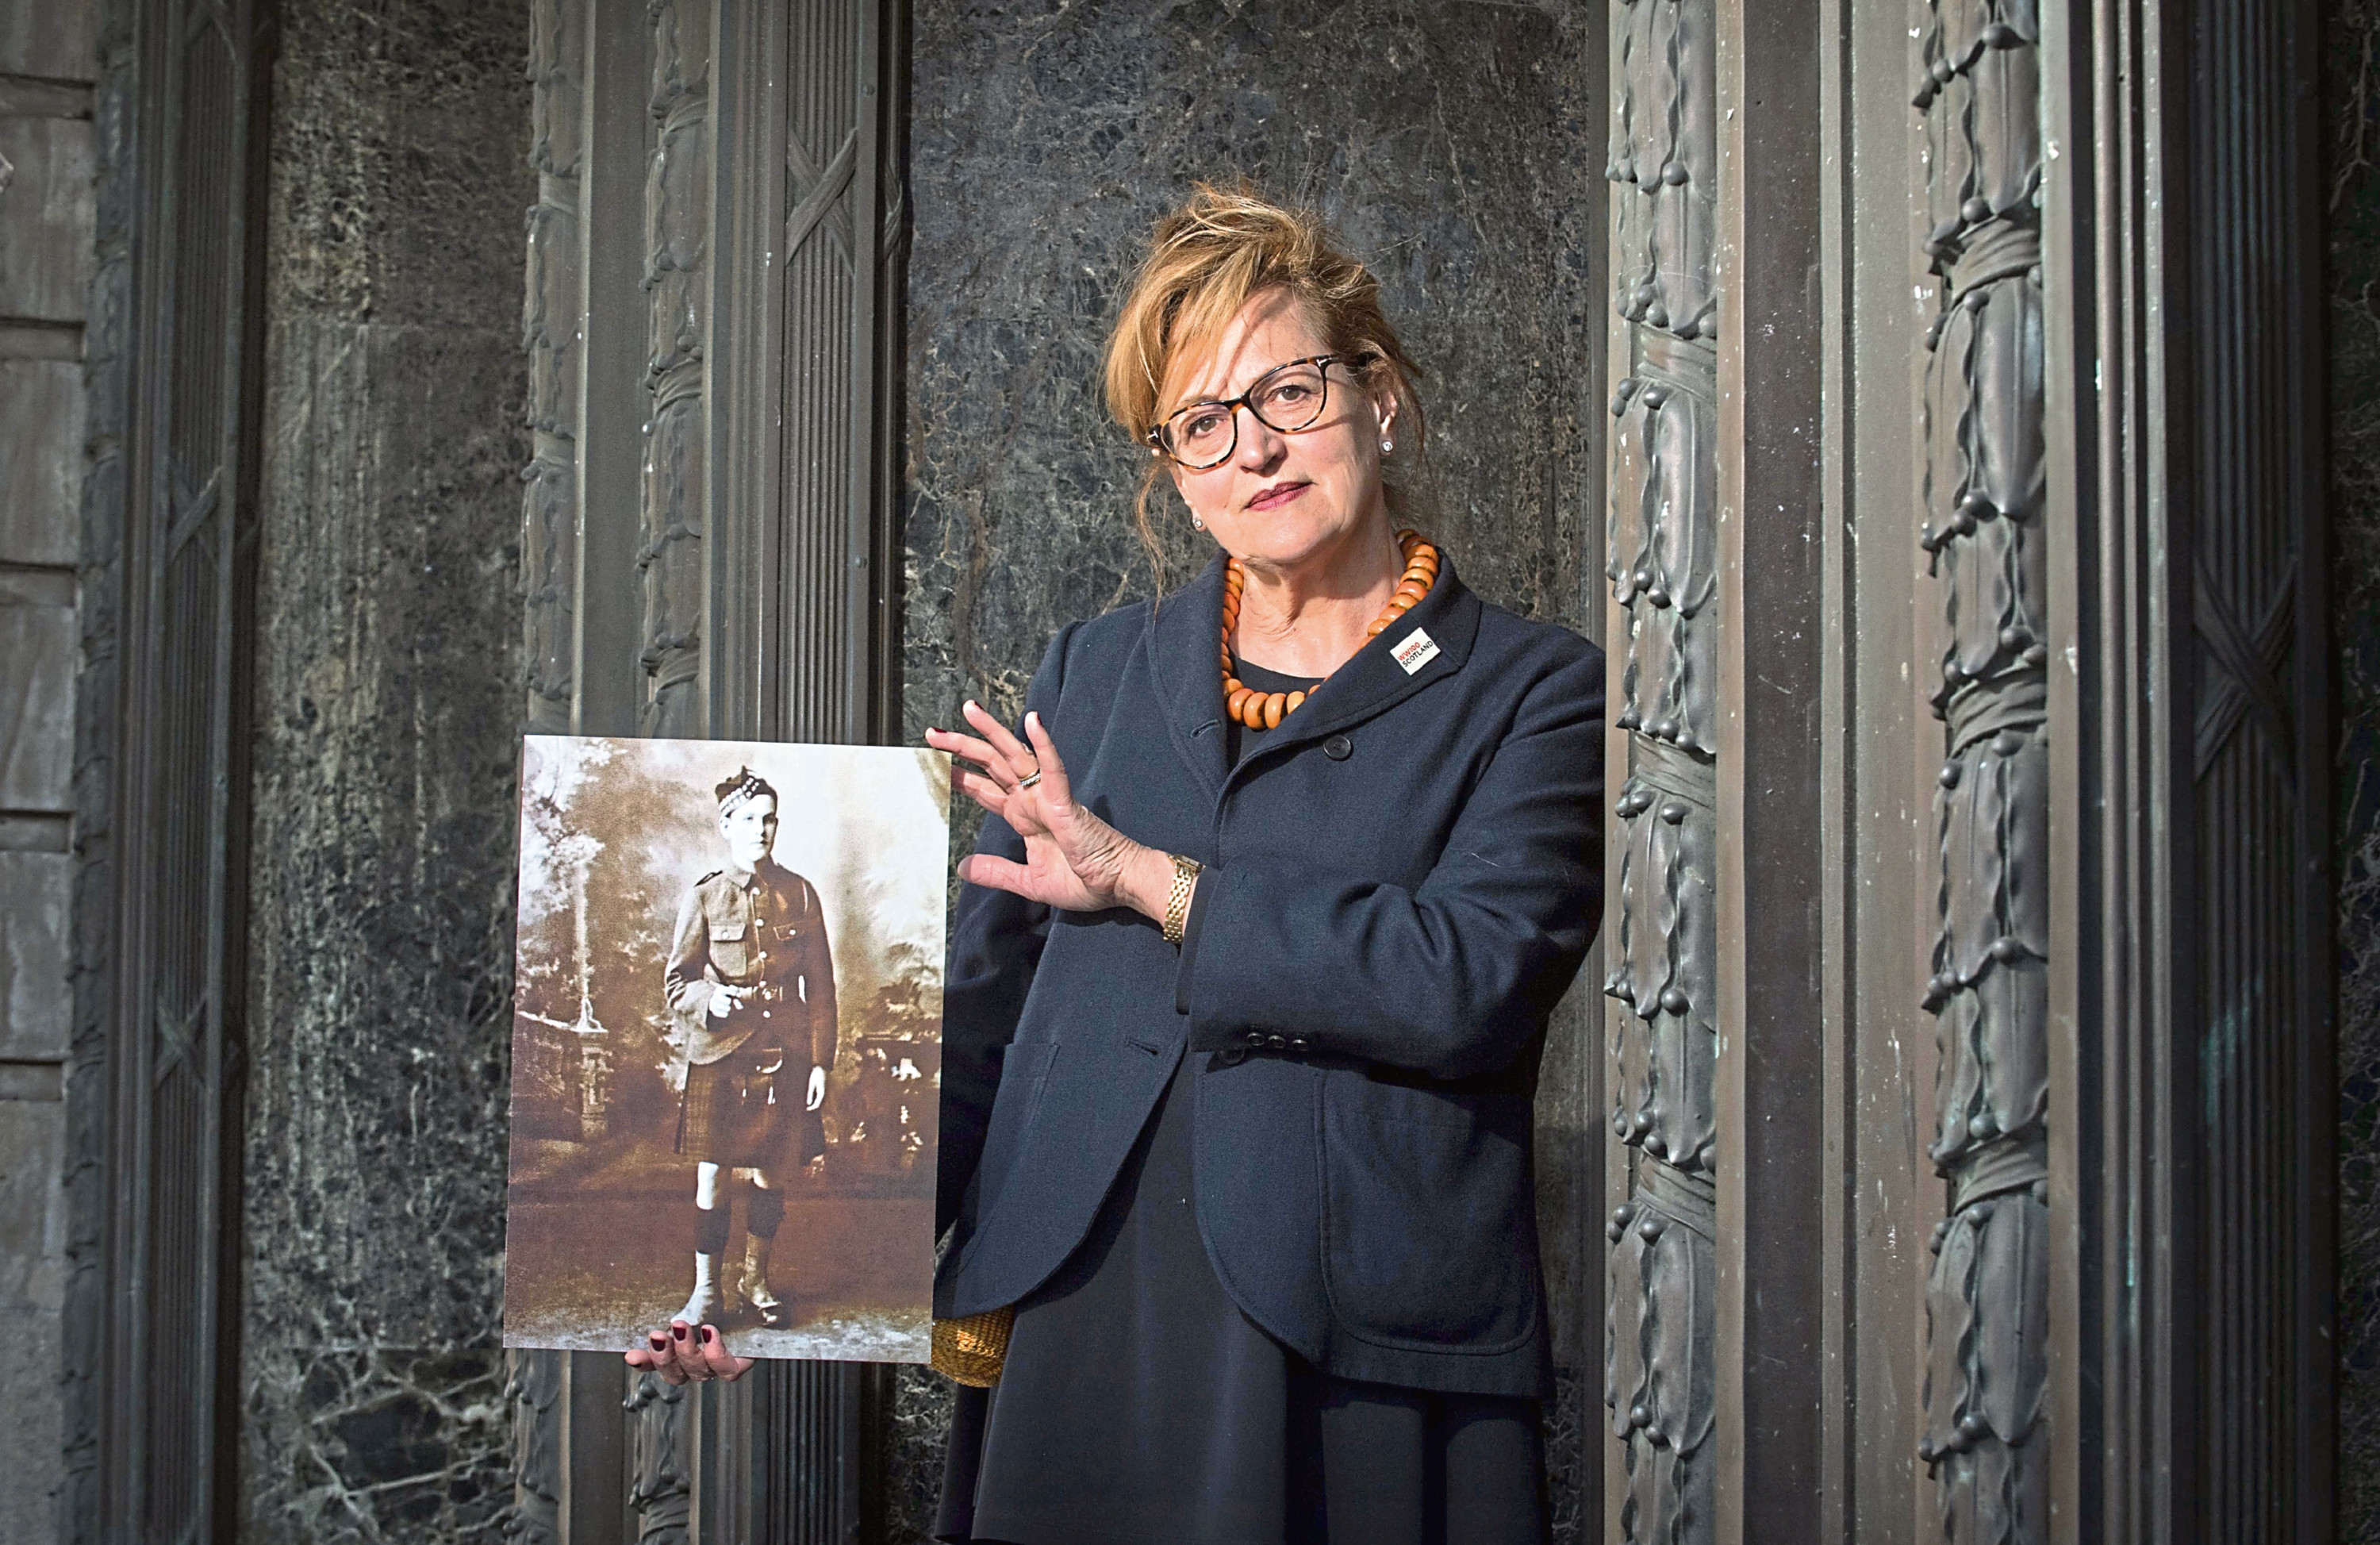 Singer Barbara Dickson with a portrait of her uncle David Dickson who died in the Battle of the Somme